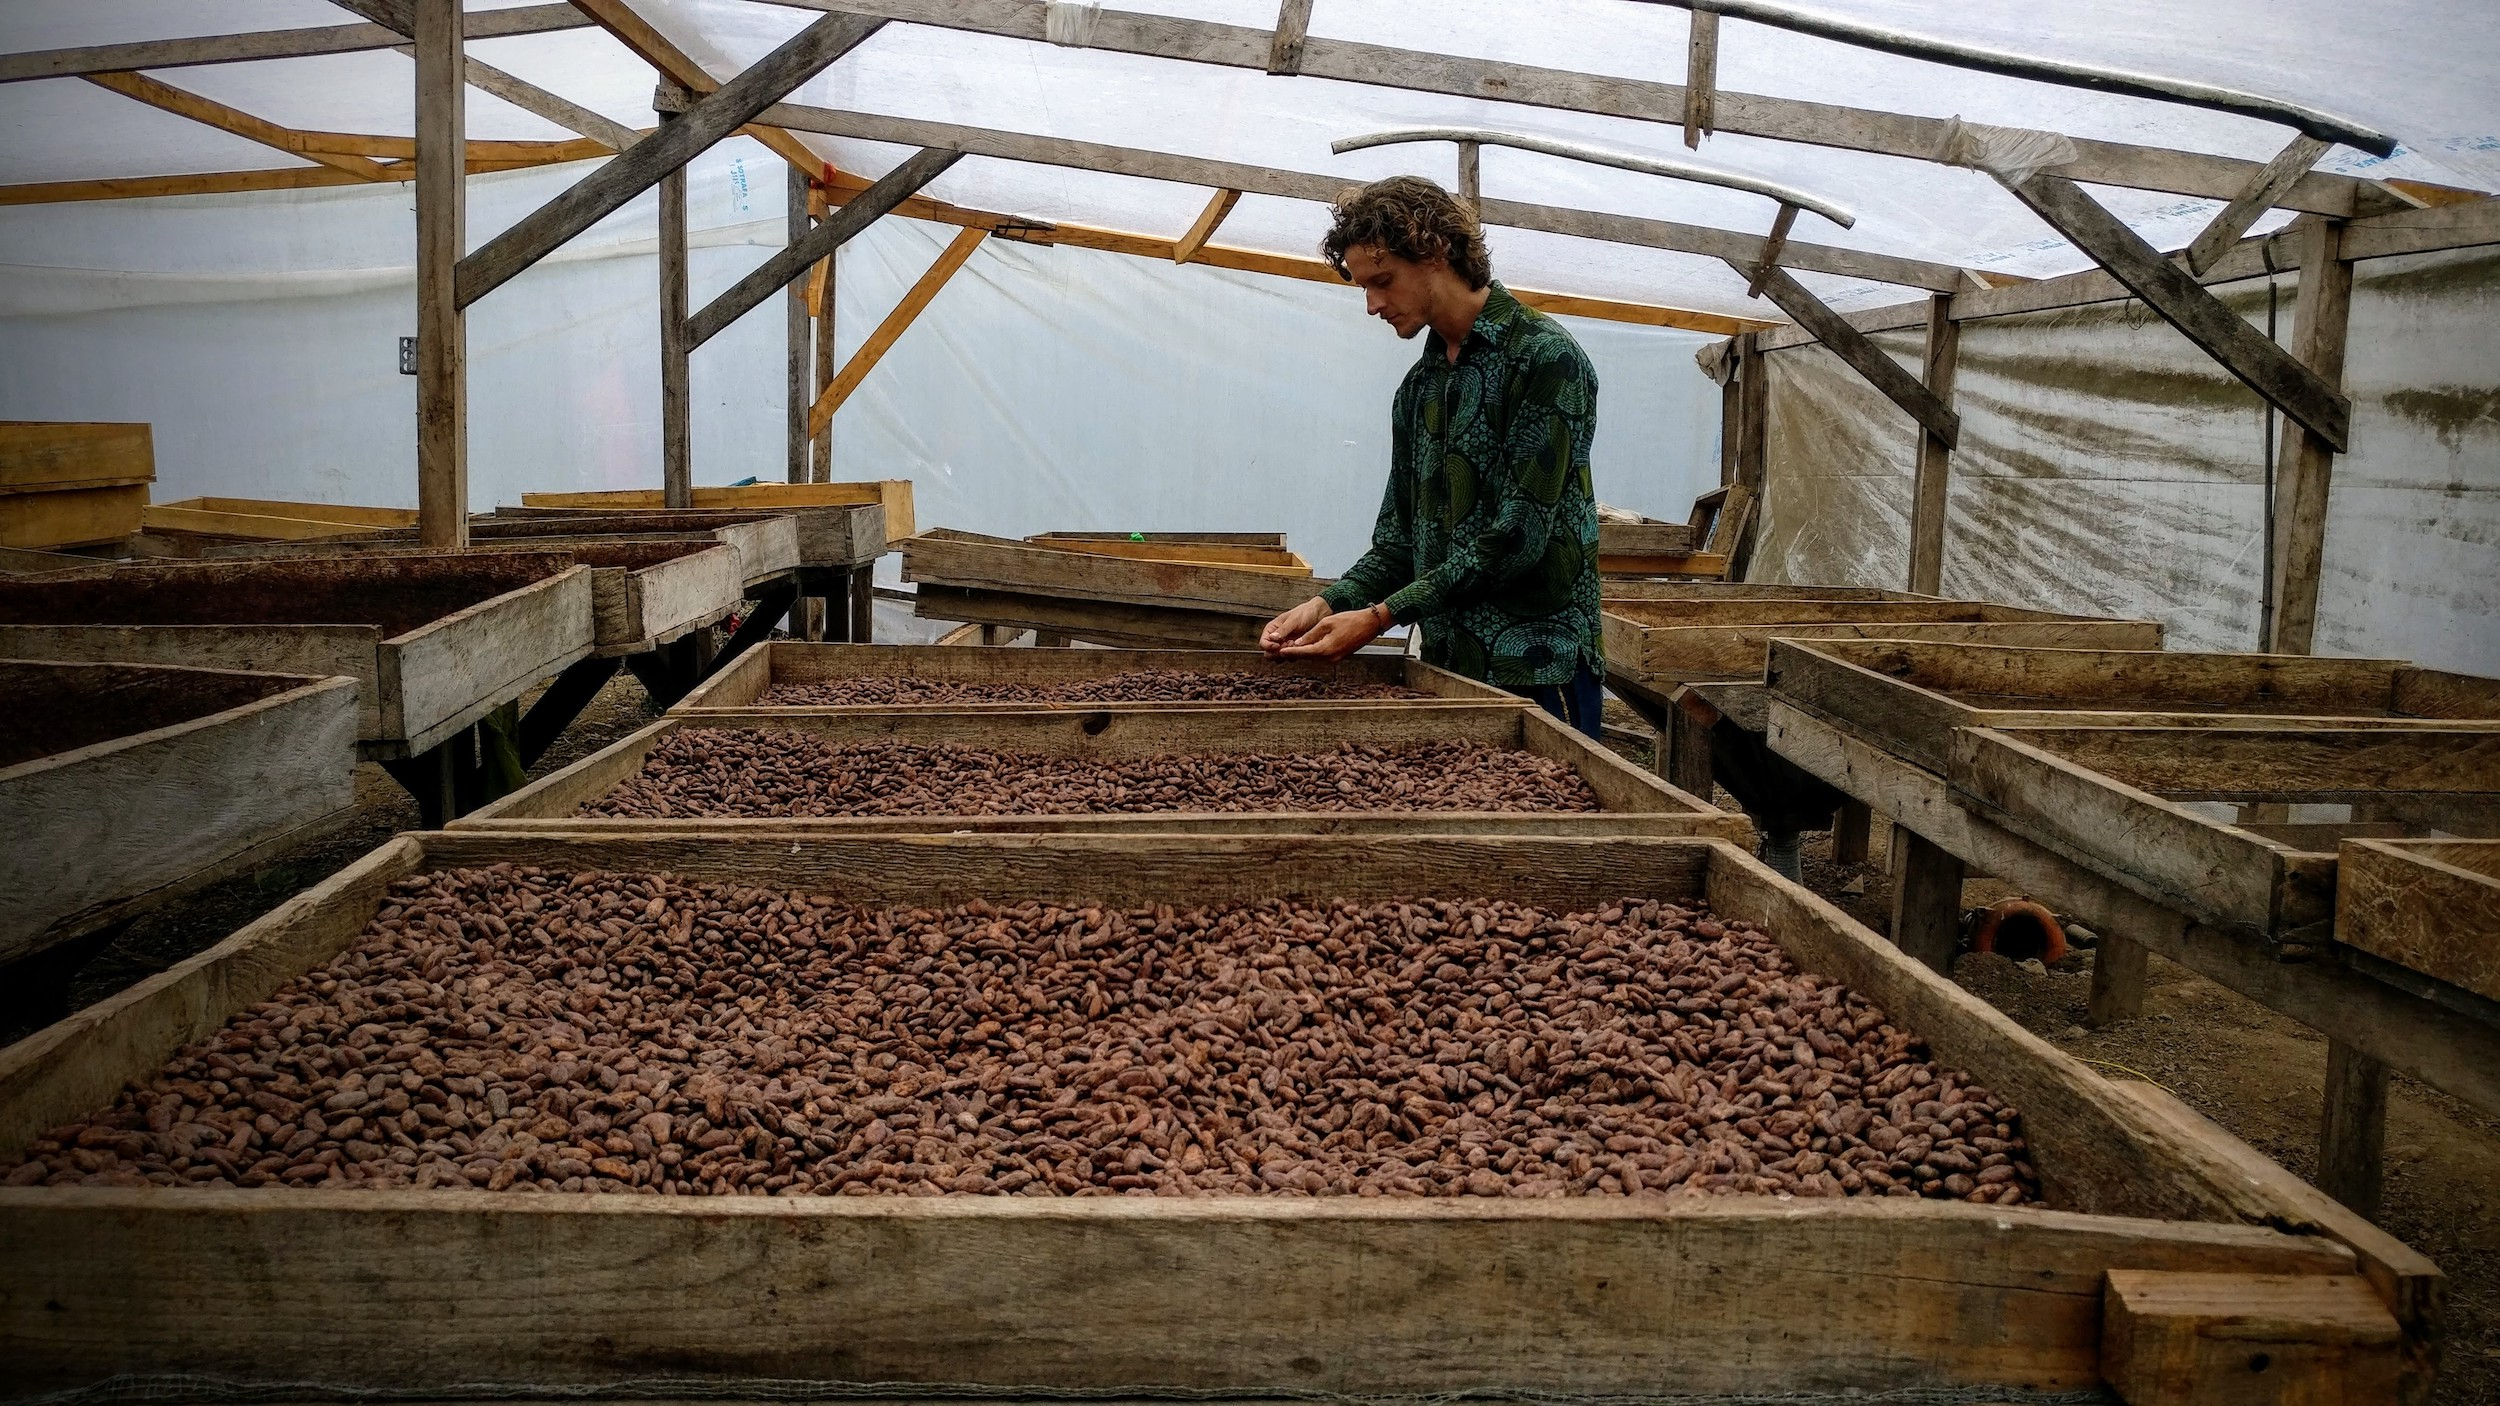 erik-cacao-farm-drying-beans.jpg